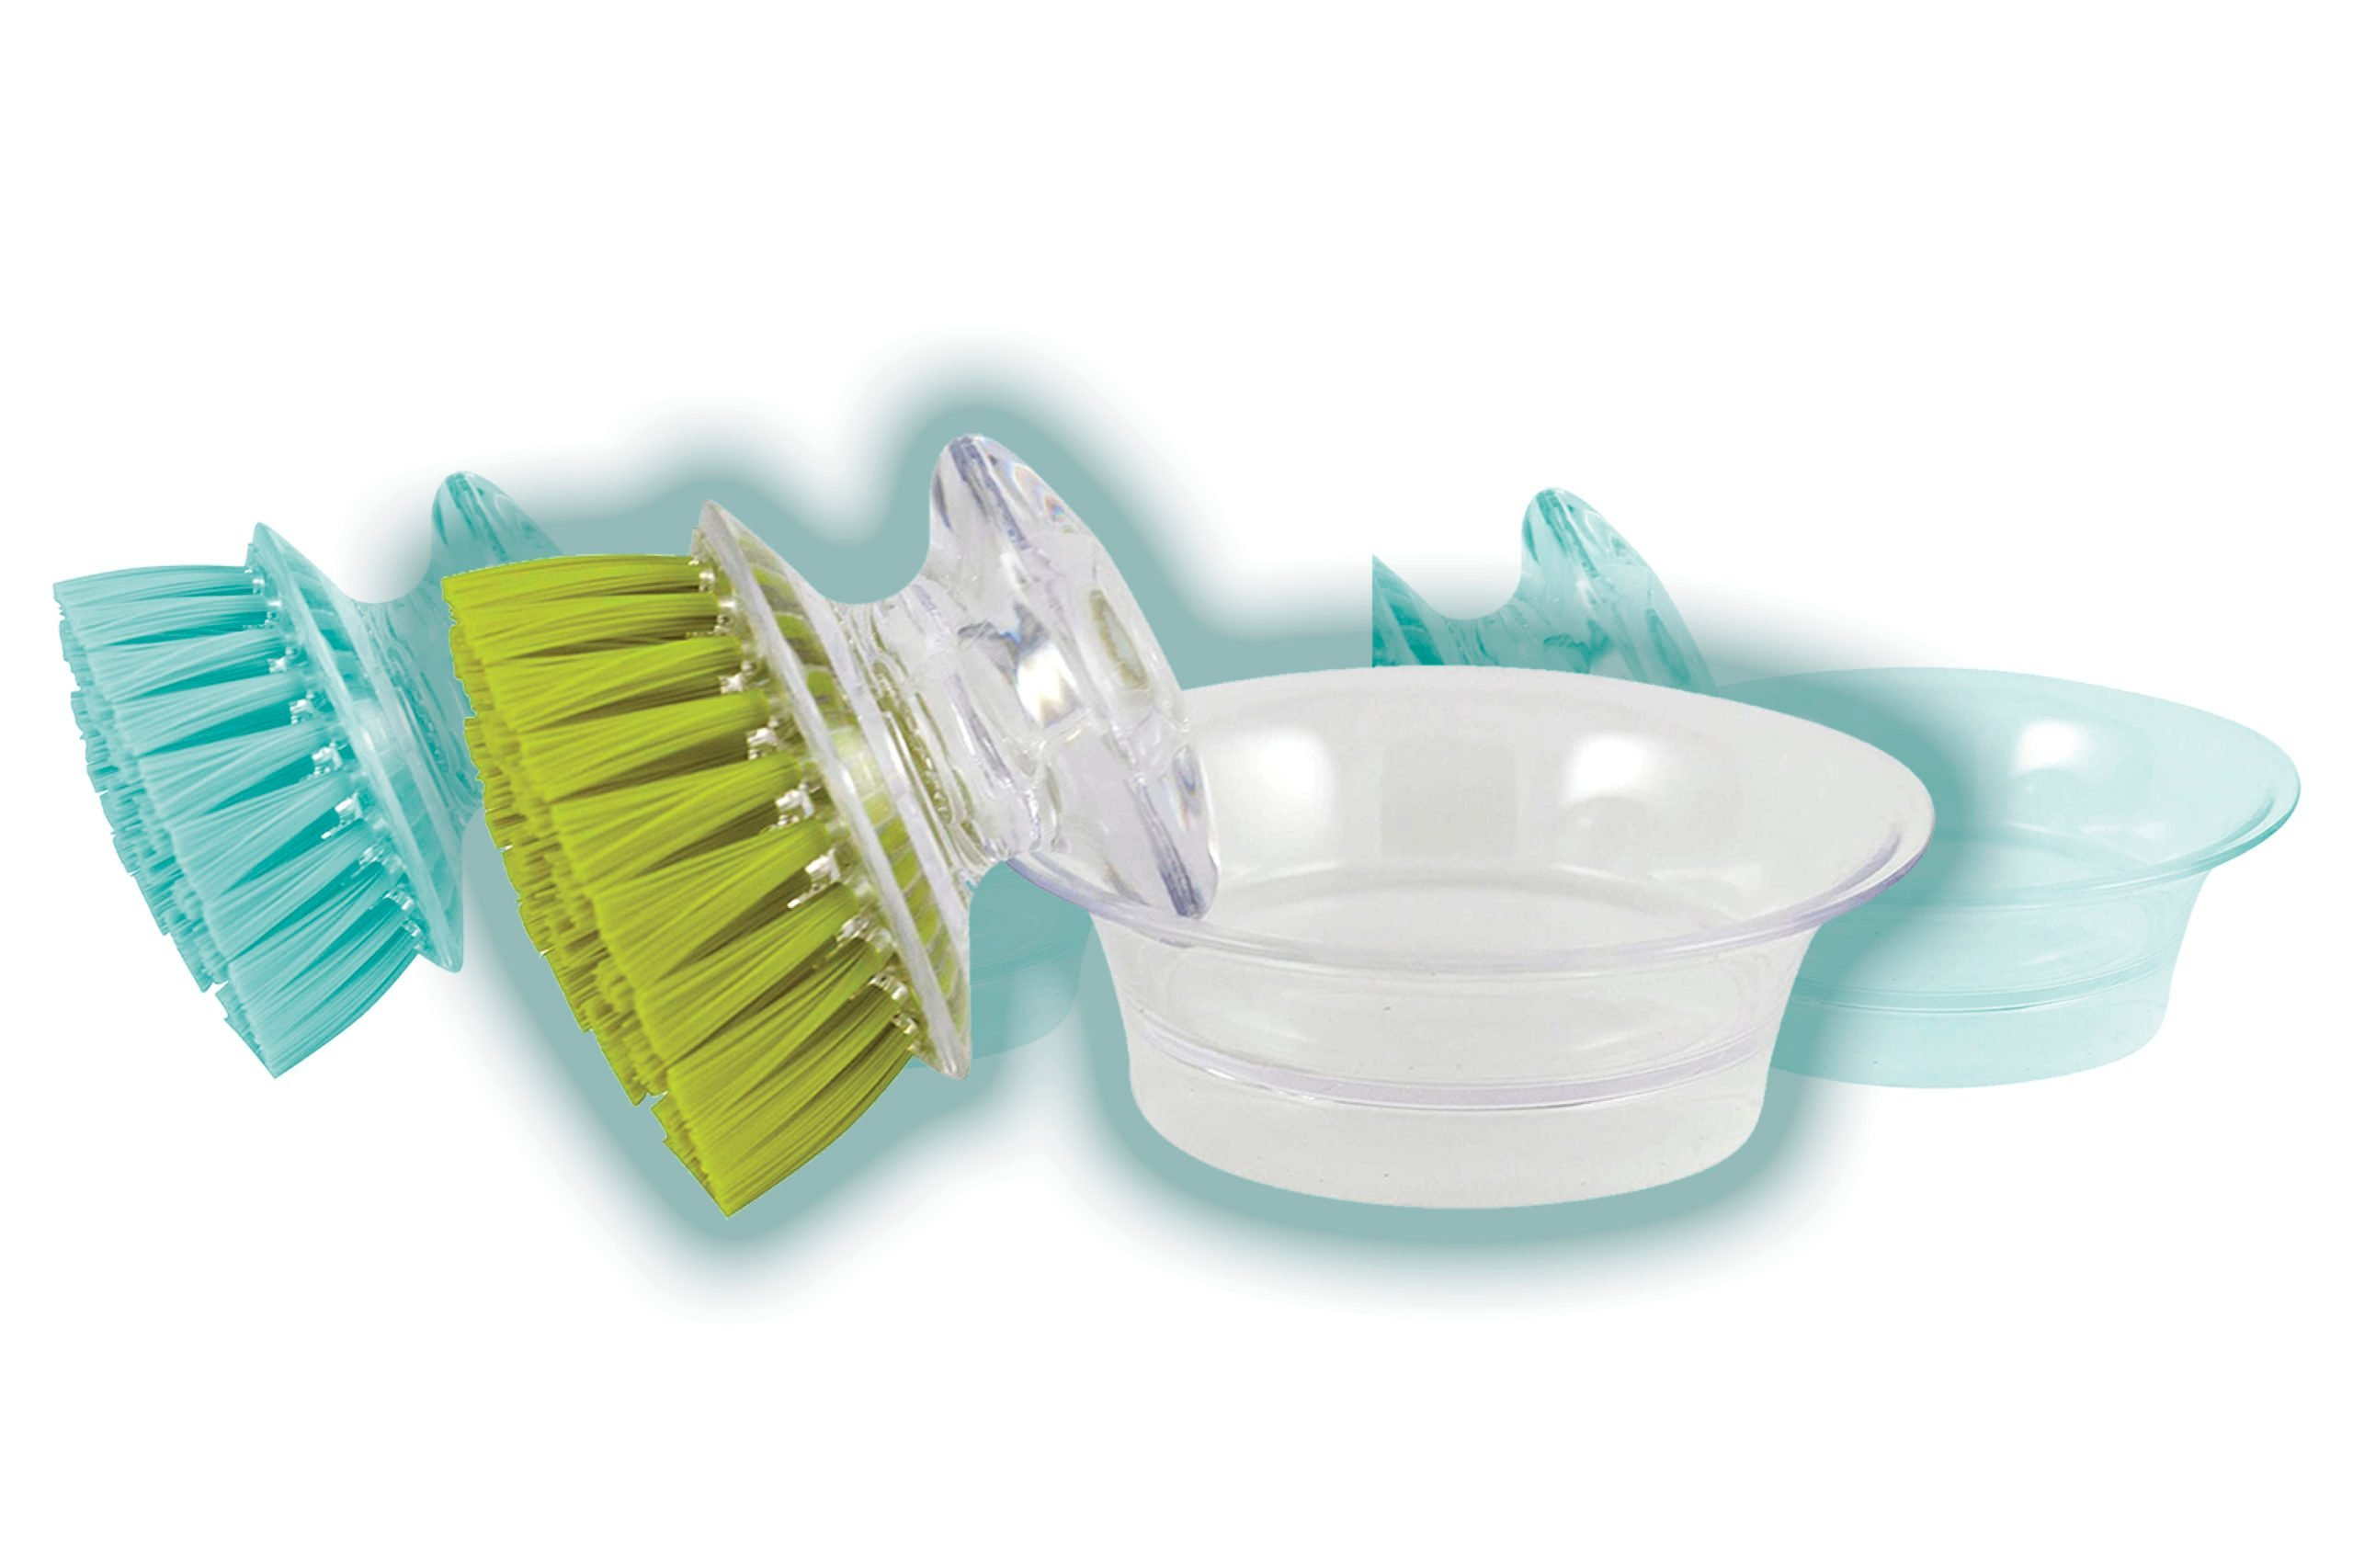 Casabella Shiny Mini Brush Scrubber with Holder, Colors Vary, 3-scrubbers TKP